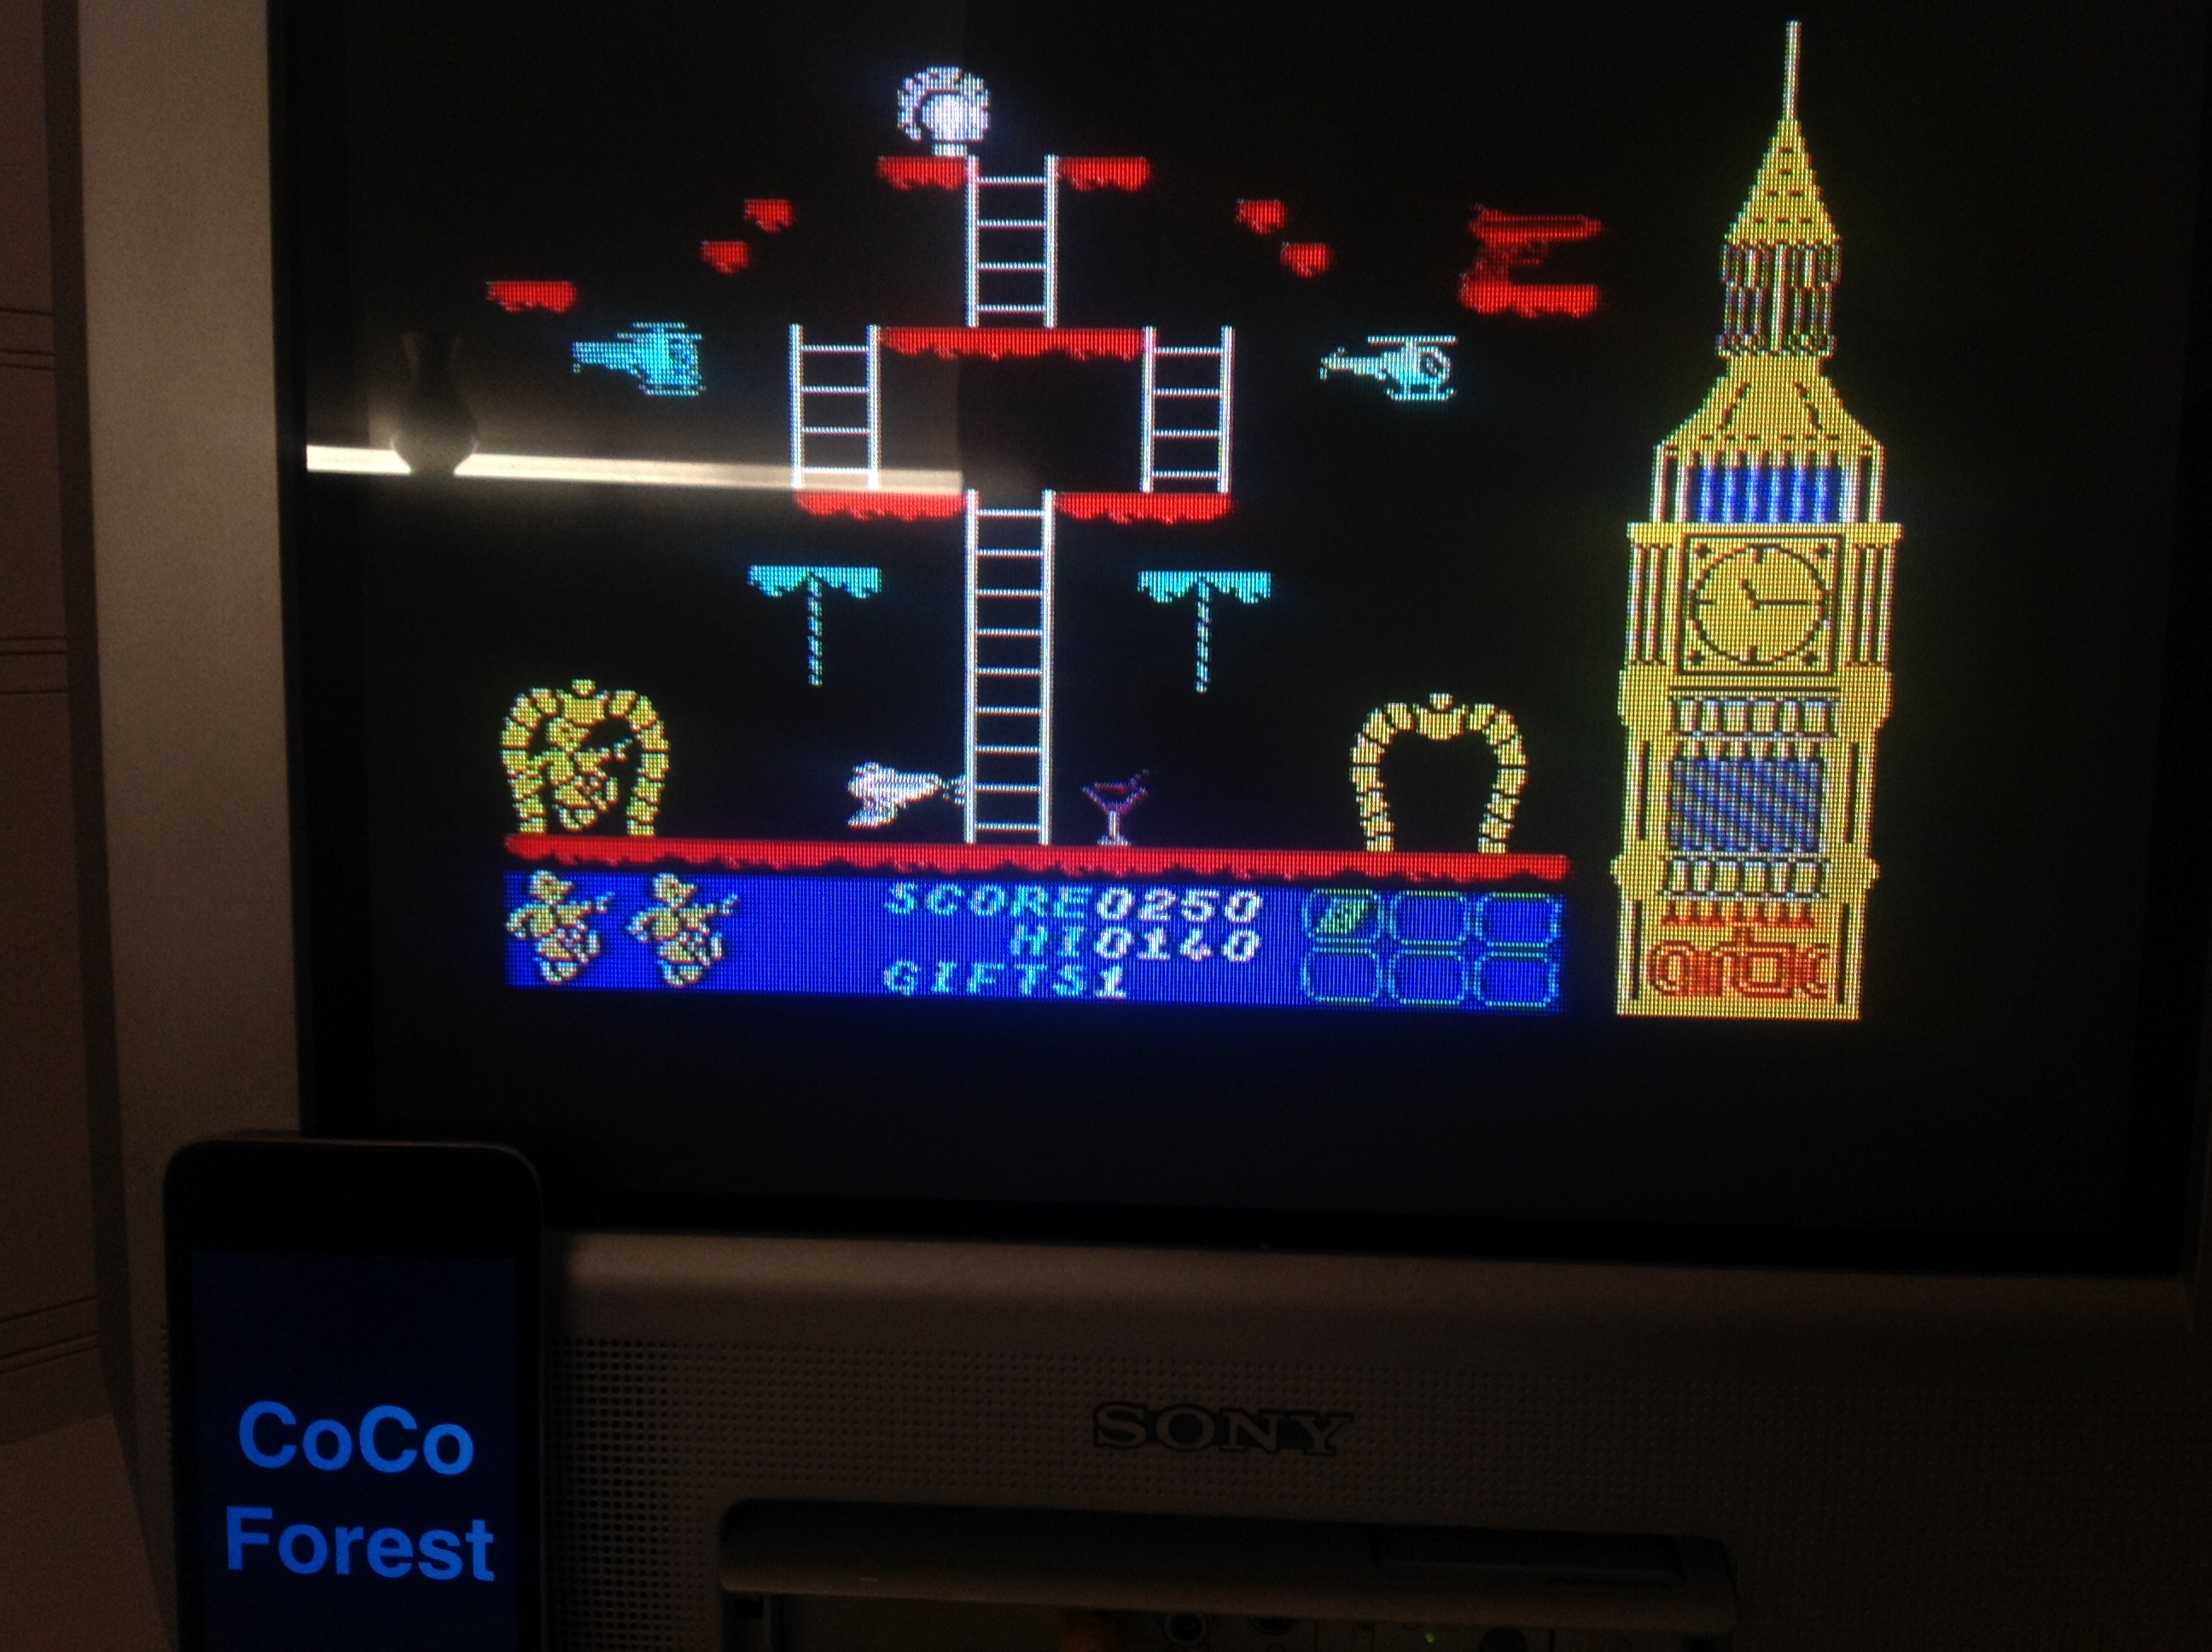 CoCoForest: Big Ben Strikes Again (ZX Spectrum) 250 points on 2016-01-20 07:51:57